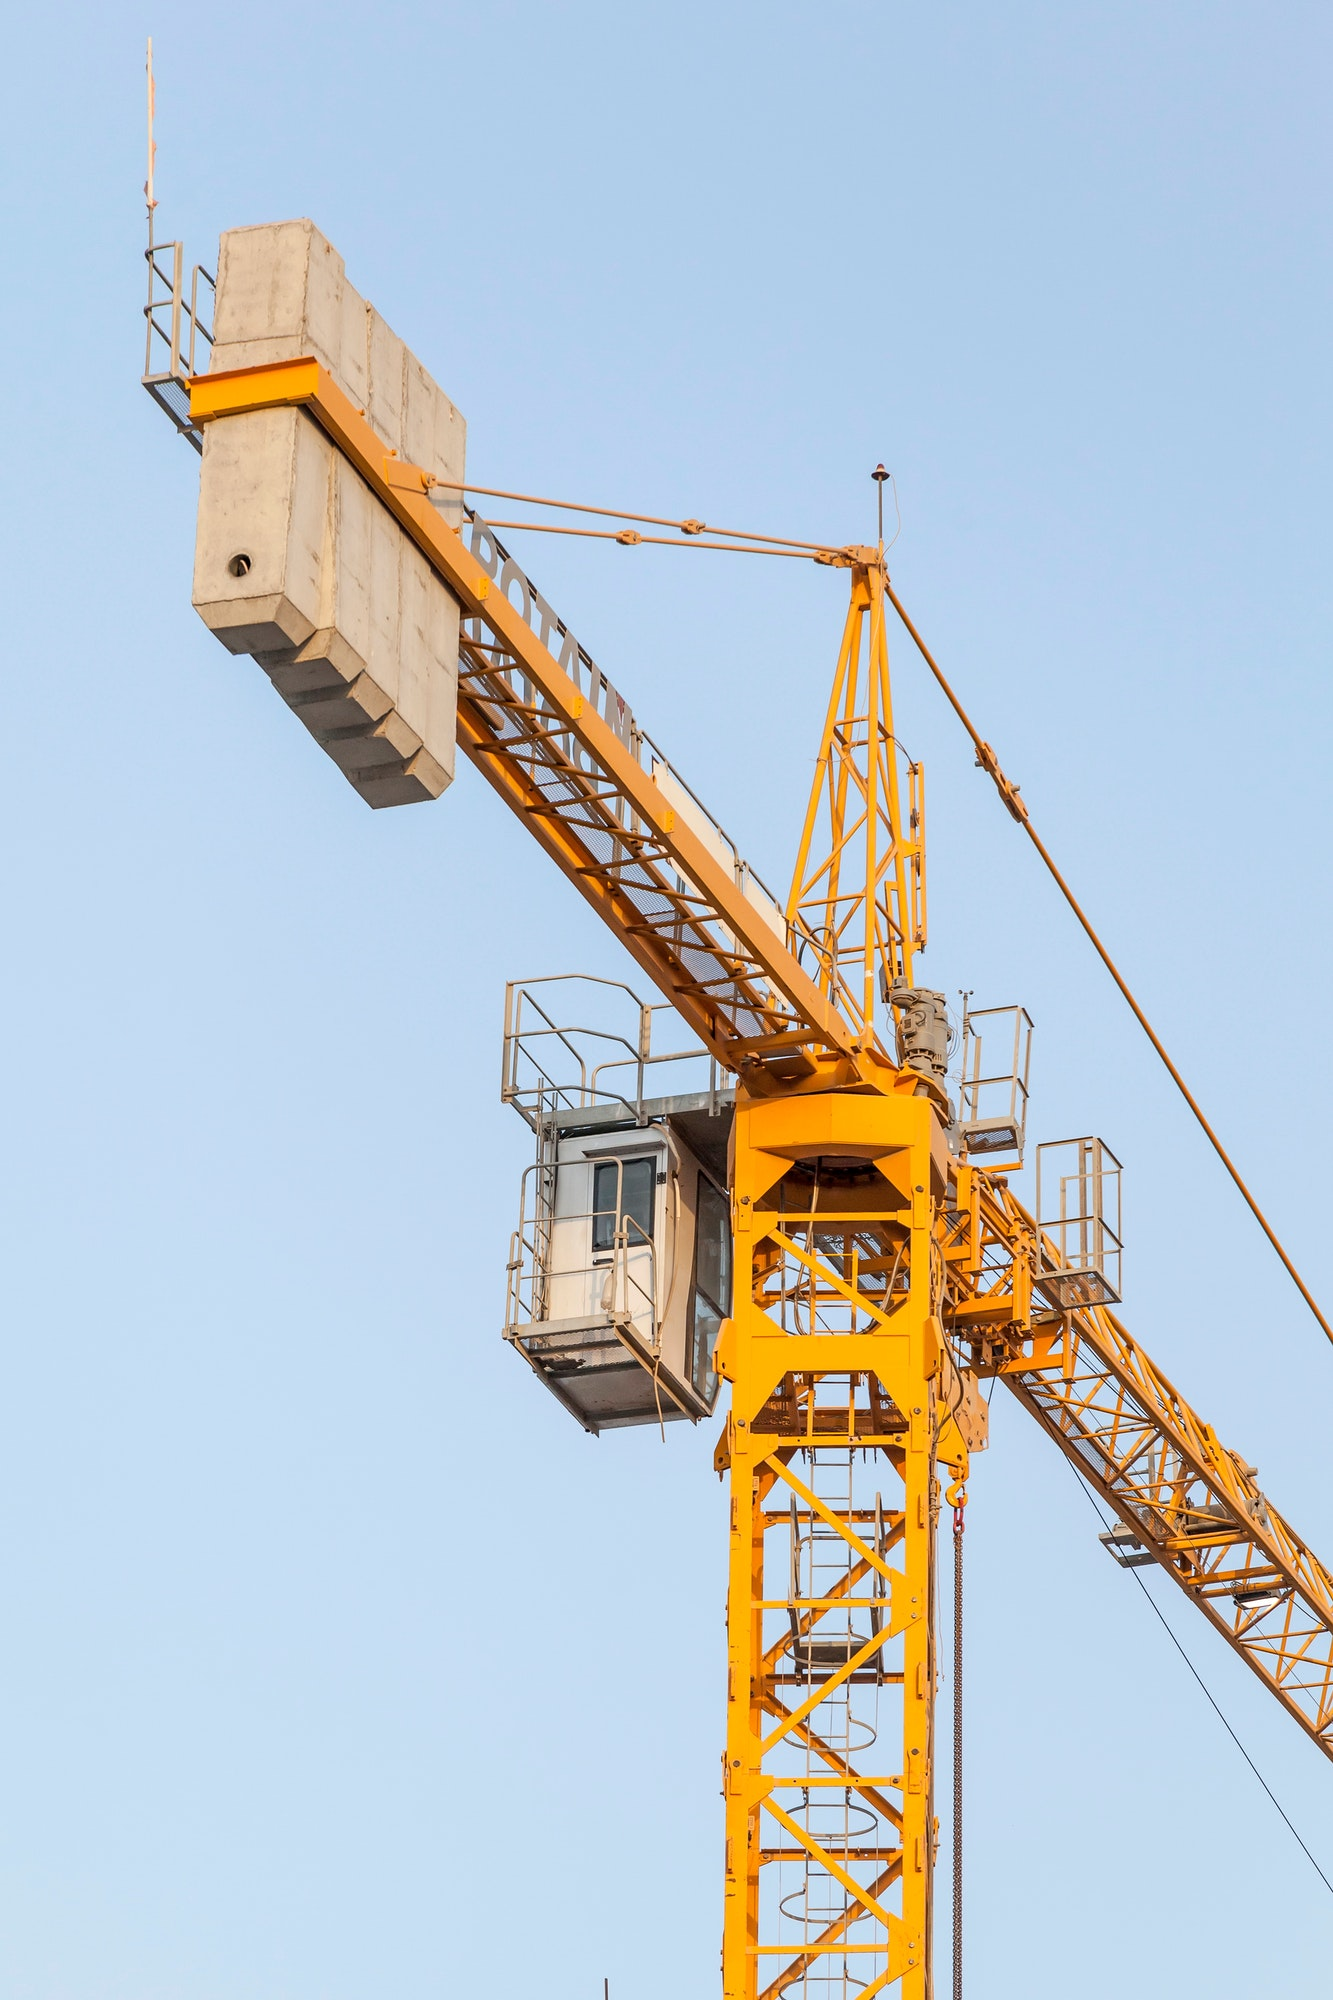 yellow construction crane against the blue sky infrastructure